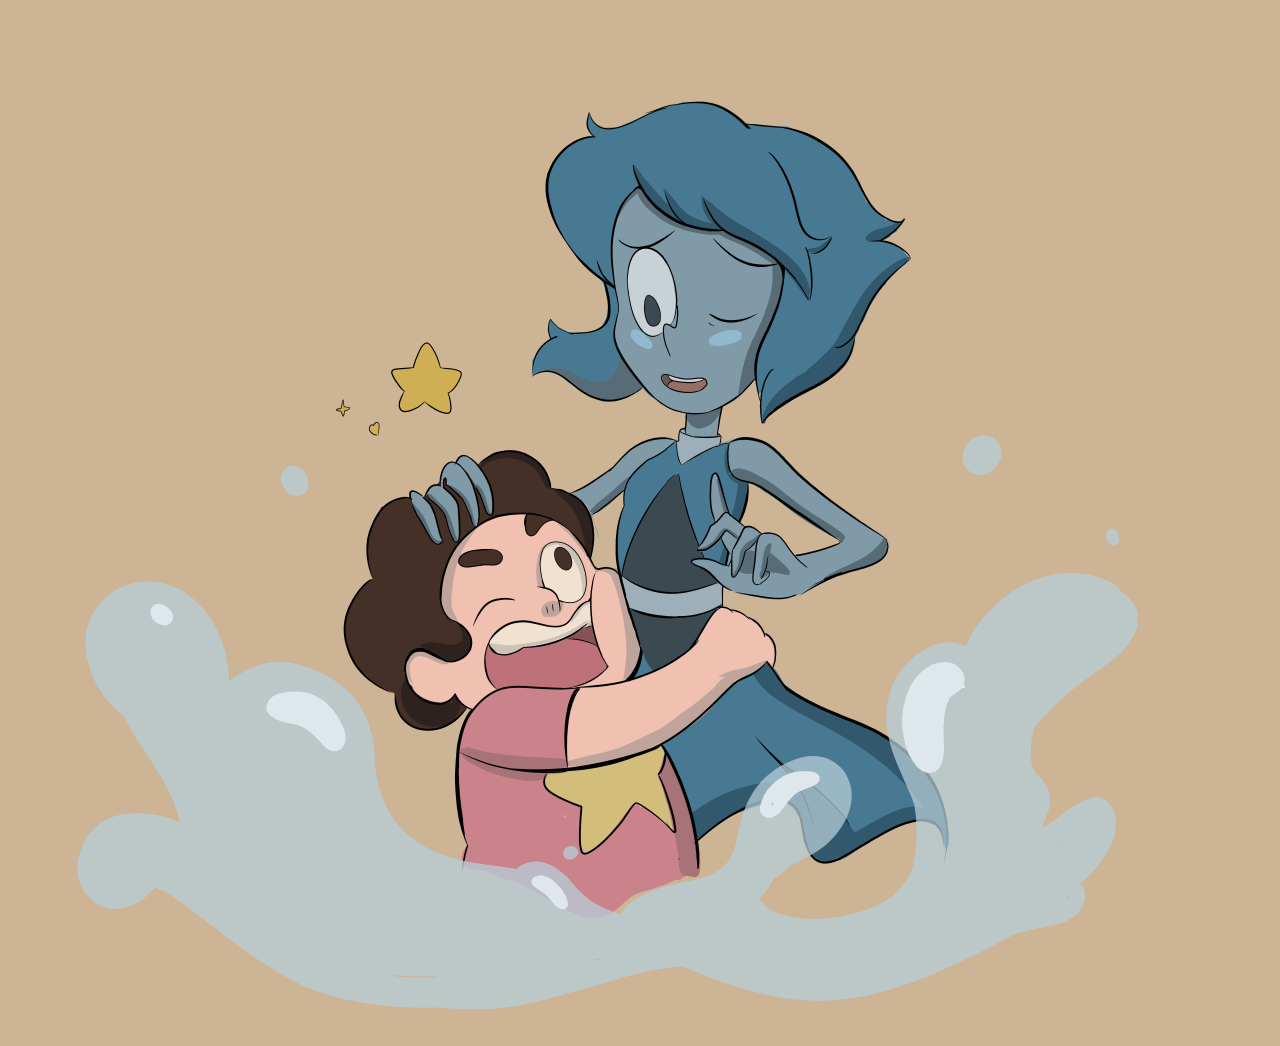 Welp. Its cute. Had a lot of fun drawing in the SU style, always fun to dig into that kind of thing. ^ .^